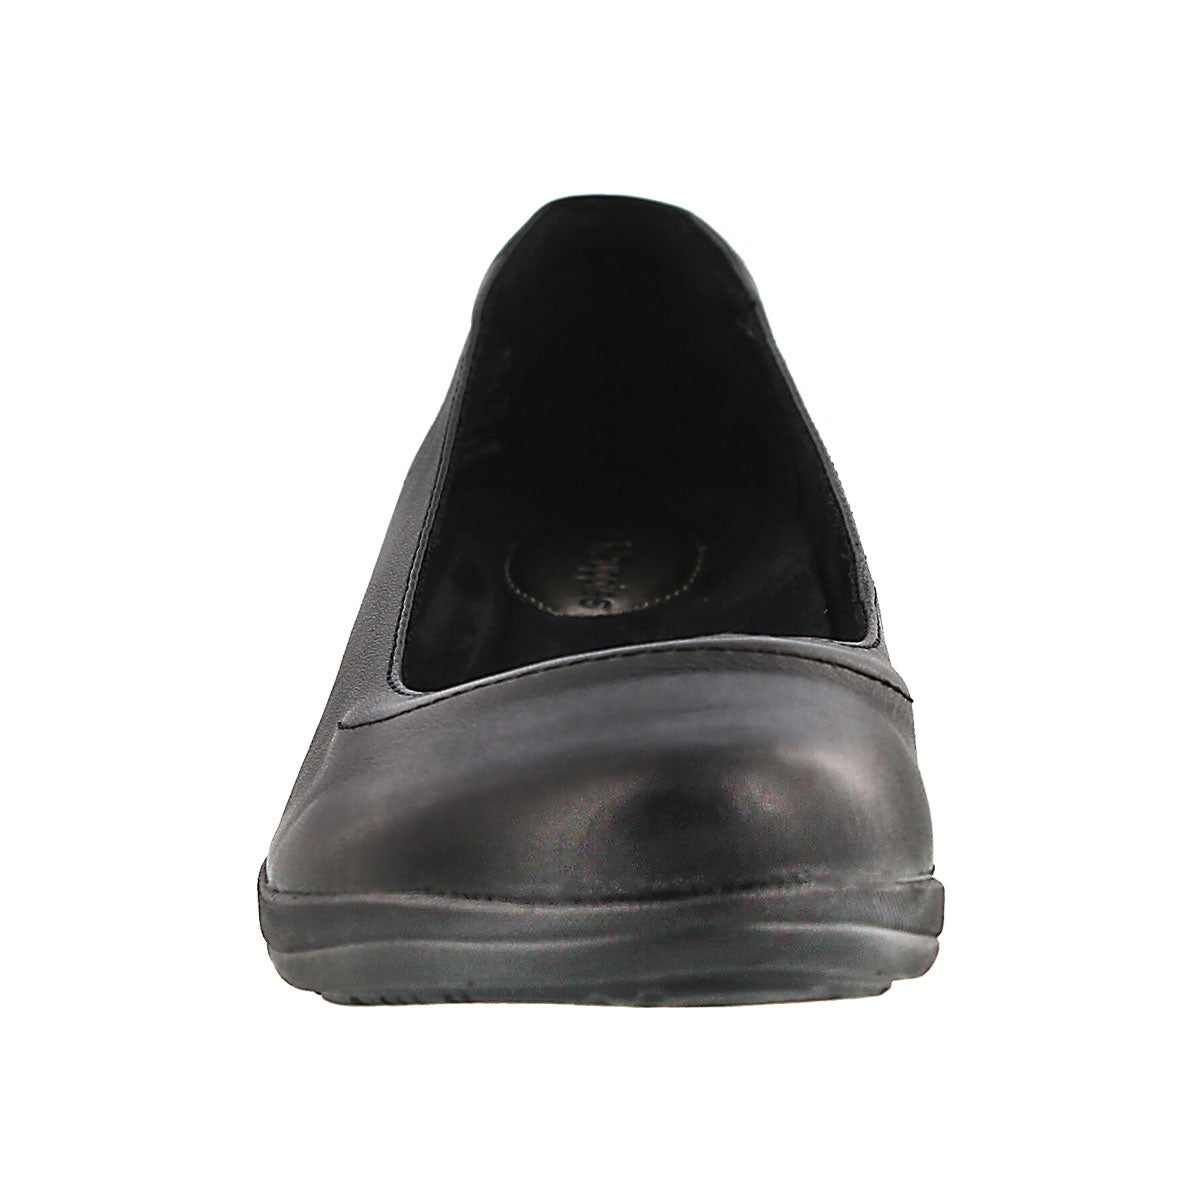 Lds Veda Oleena black casual wedge